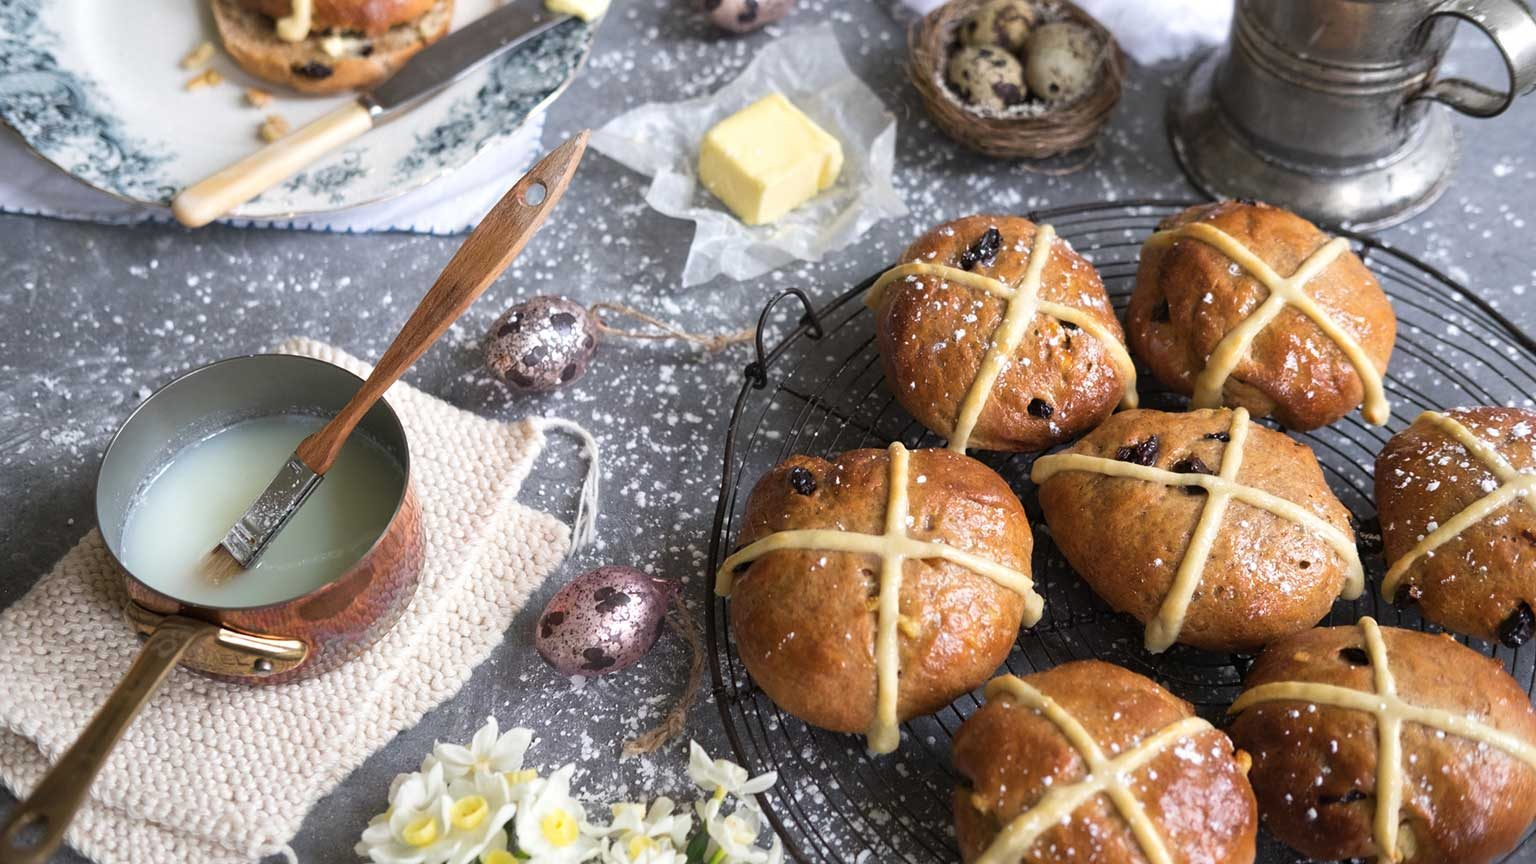 Cooking shot showing traditional hot cross buns being glazed with a sugar syrup.